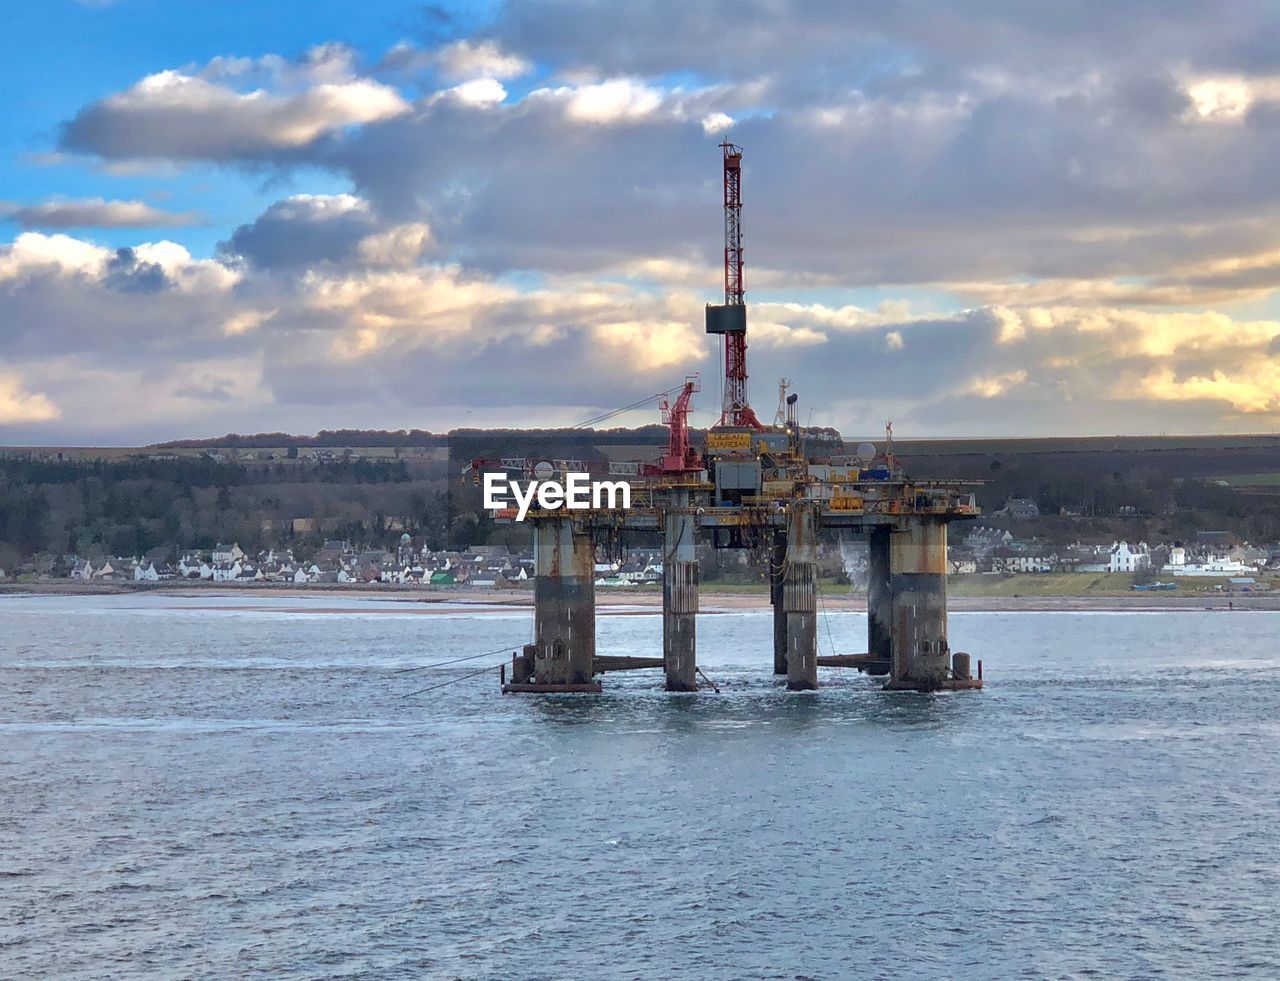 water, cloud - sky, waterfront, built structure, sea, architecture, sky, industry, oil industry, nature, fuel and power generation, offshore platform, drilling rig, no people, building exterior, sunset, outdoors, day, scenics - nature